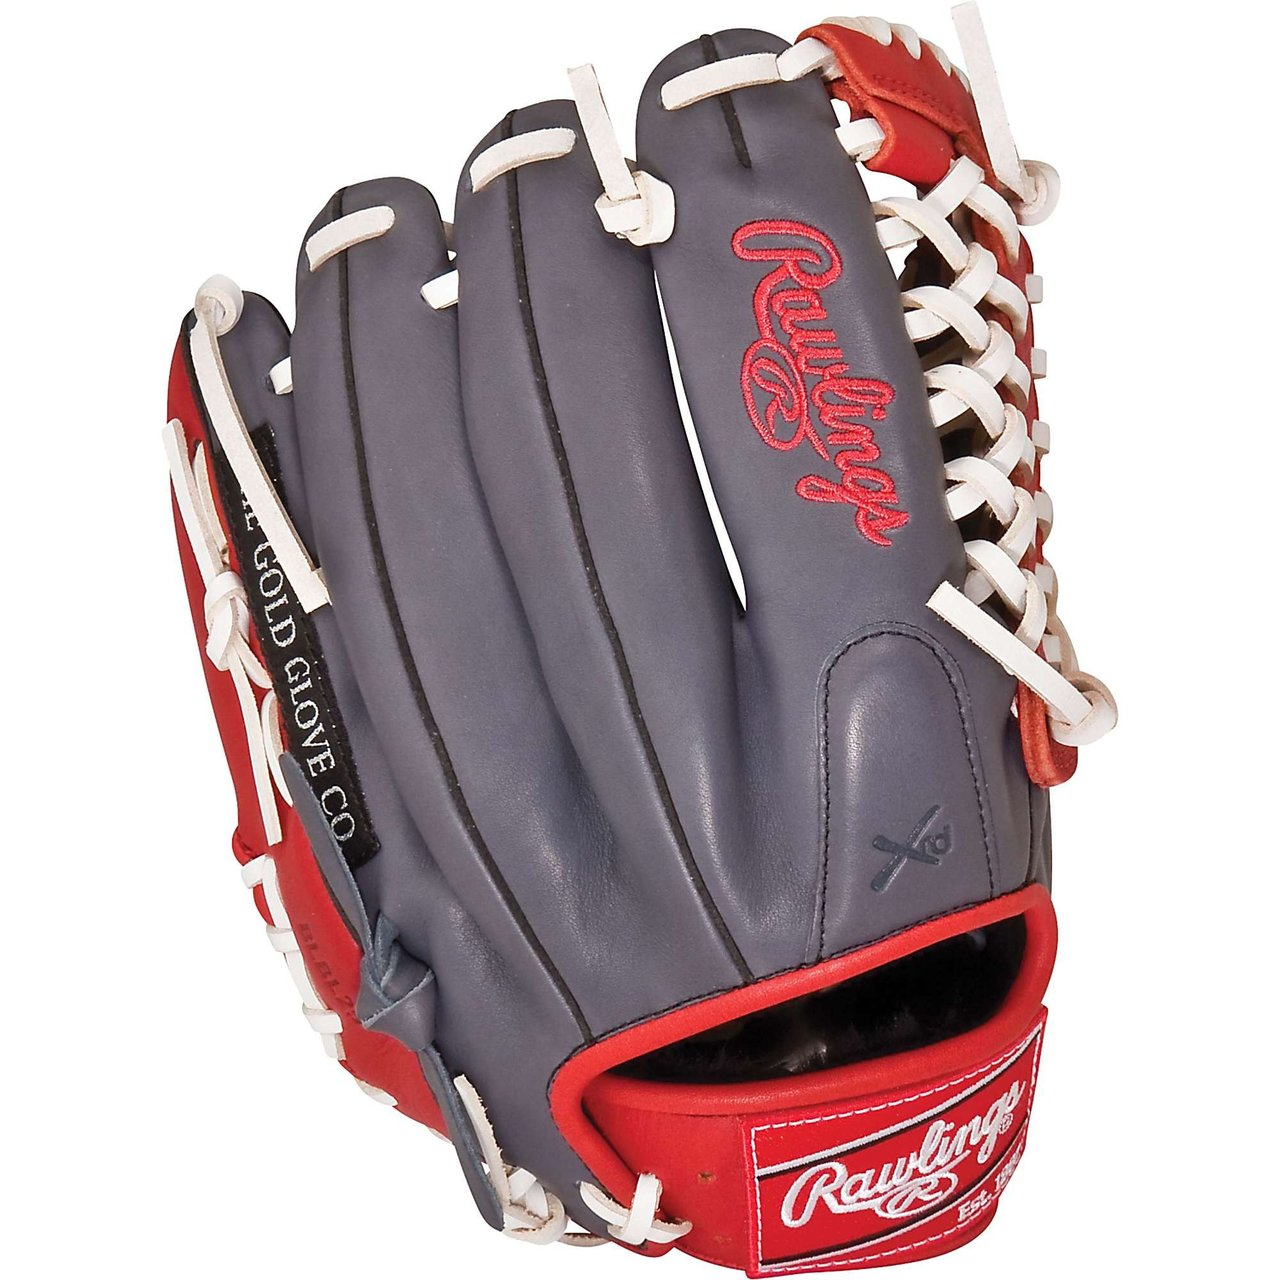 rawlings-gxle5gsw-gamer-xle-series-baseball-glove-11-75-inch-right-handed-throw GXLE5GSW-Right Handed Throw Rawlings New Rawlings GXLE5GSW Gamer XLE Series Baseball Glove 11.75 Inch Right Handed